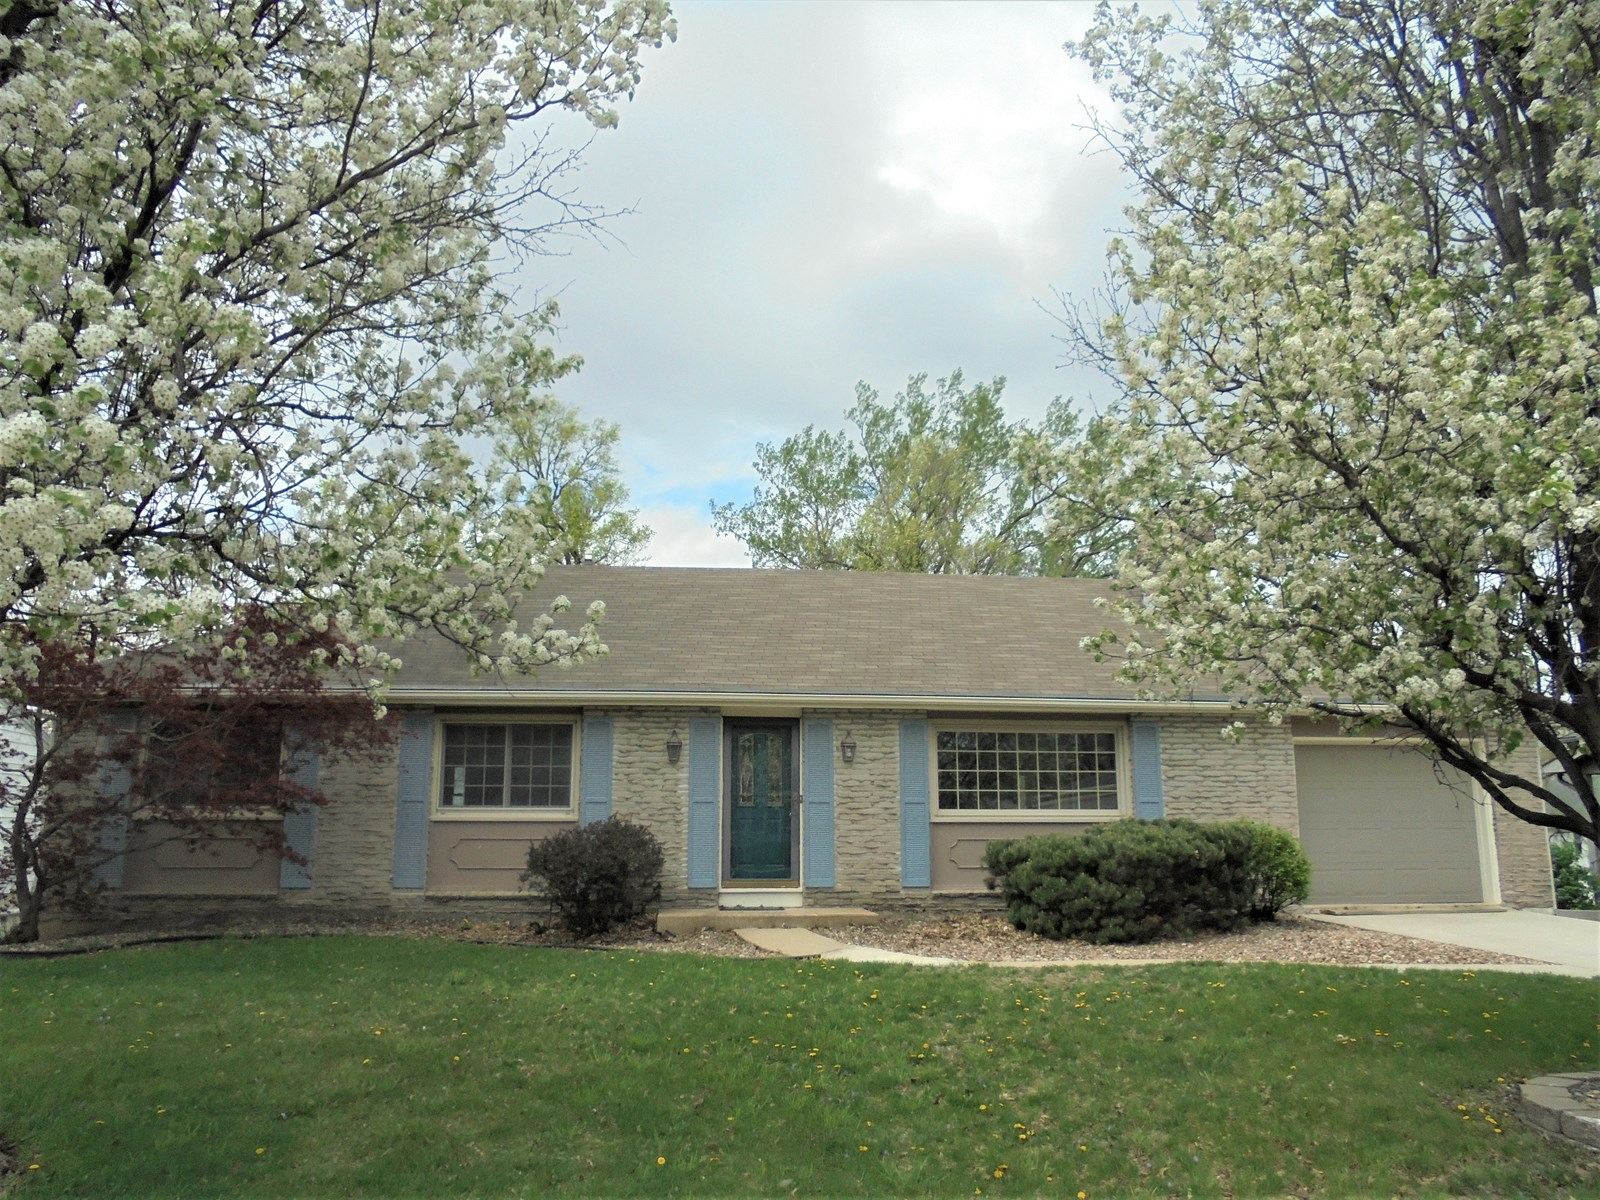 Ranch Home w/ Curb Appeal, Chillicothe, MO